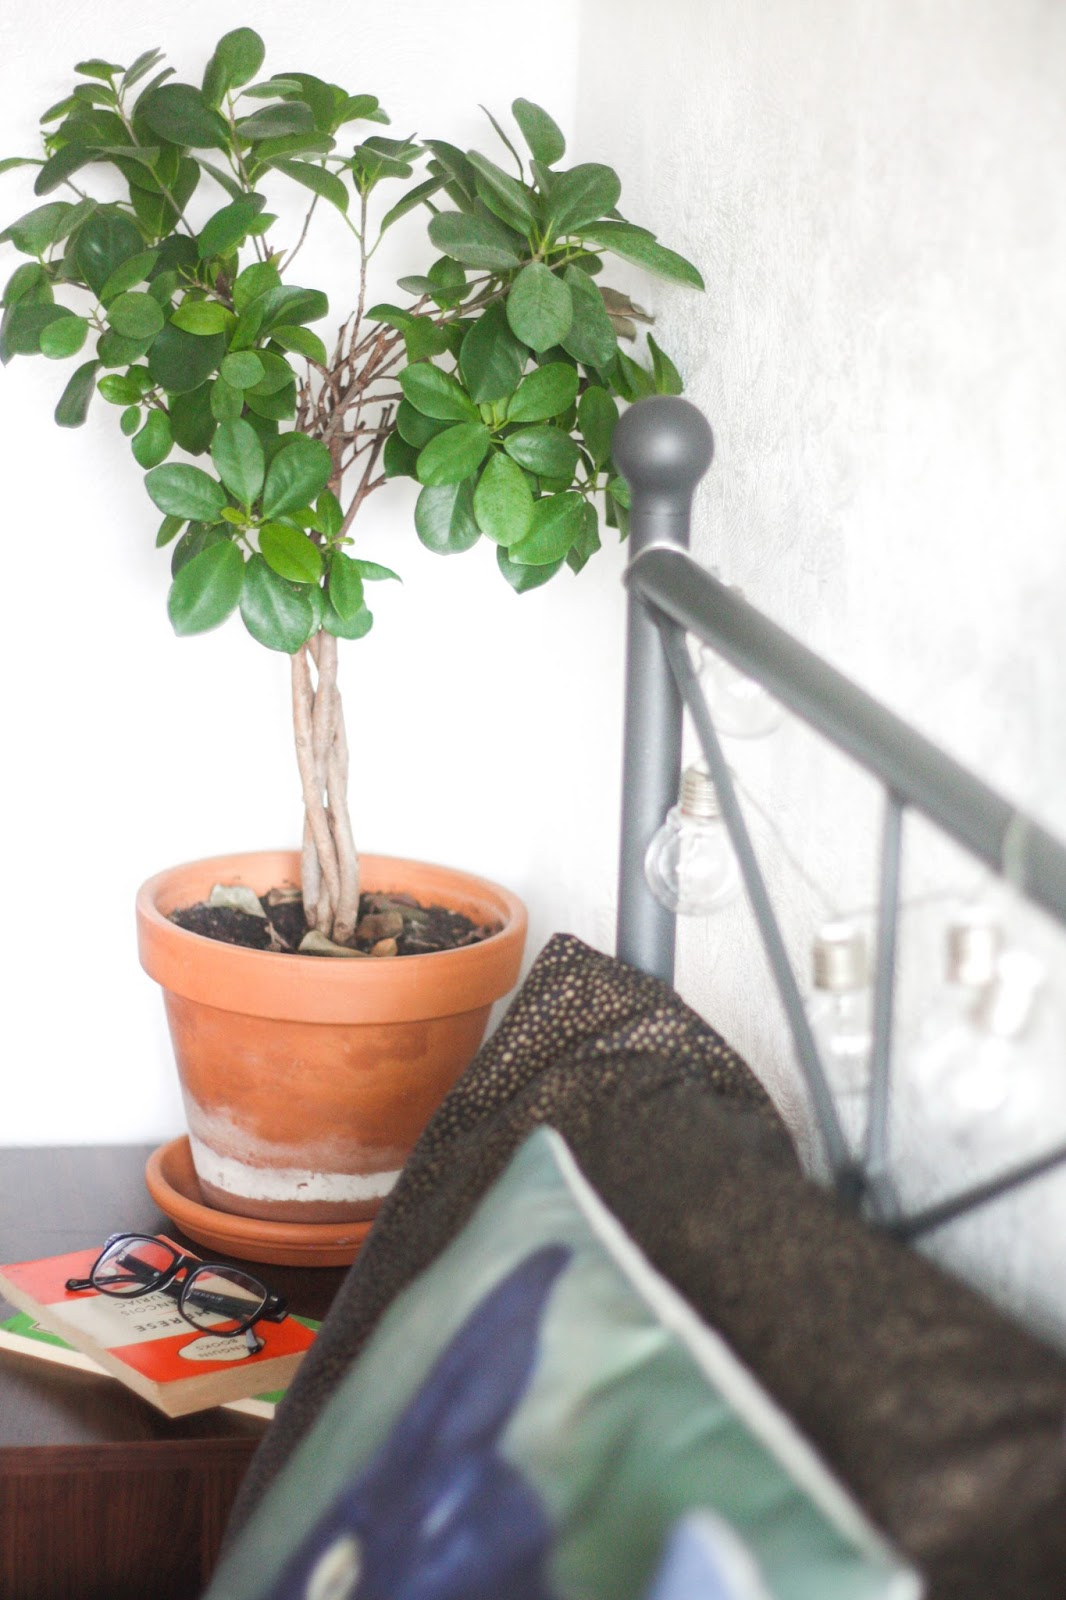 Ficus plants - which one to pick?